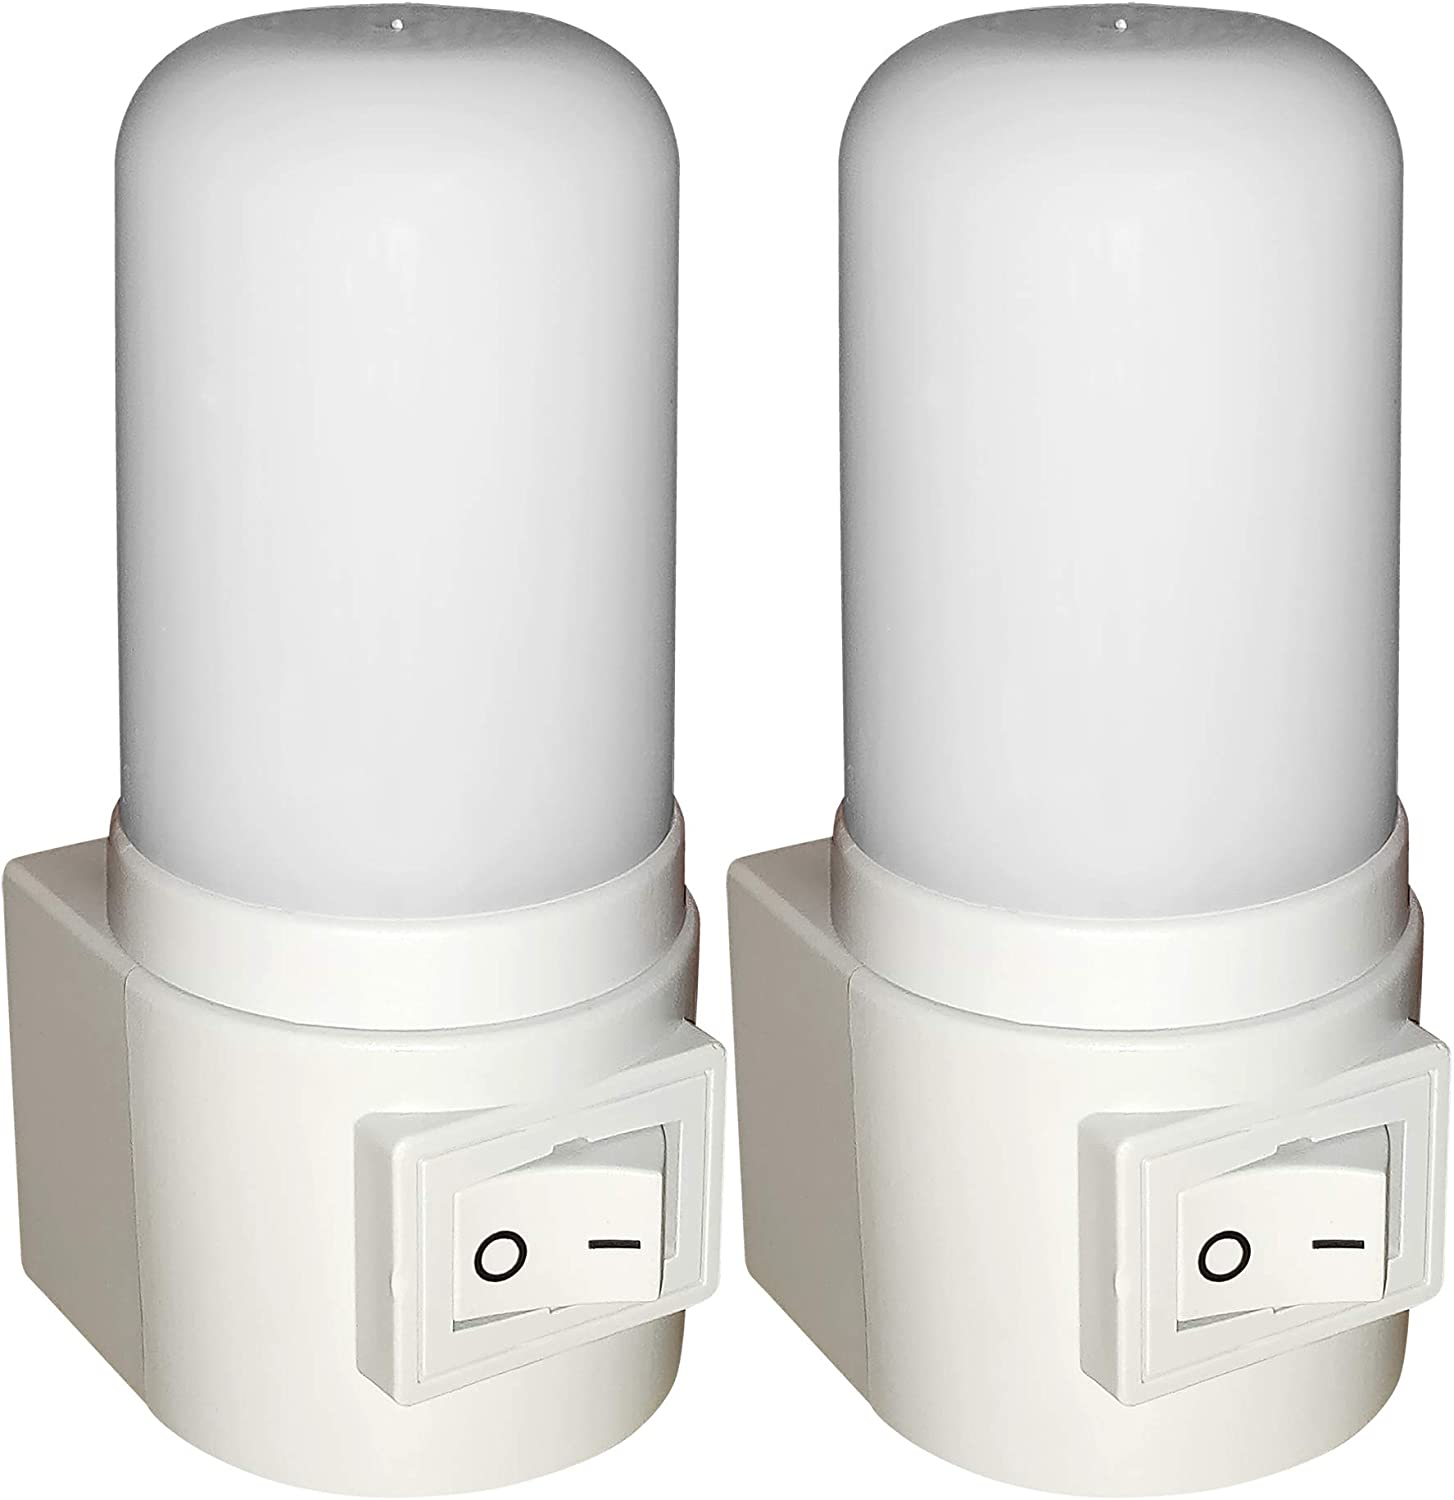 Maximm LED Manual On/Off Switch Plug-in Night Light, Bright White, [2 Pack], Indoor Light Bathroom, Hallway, Stairs, Pantry, Laundry Room and Walk-in Closet Compact and Energy Efficient